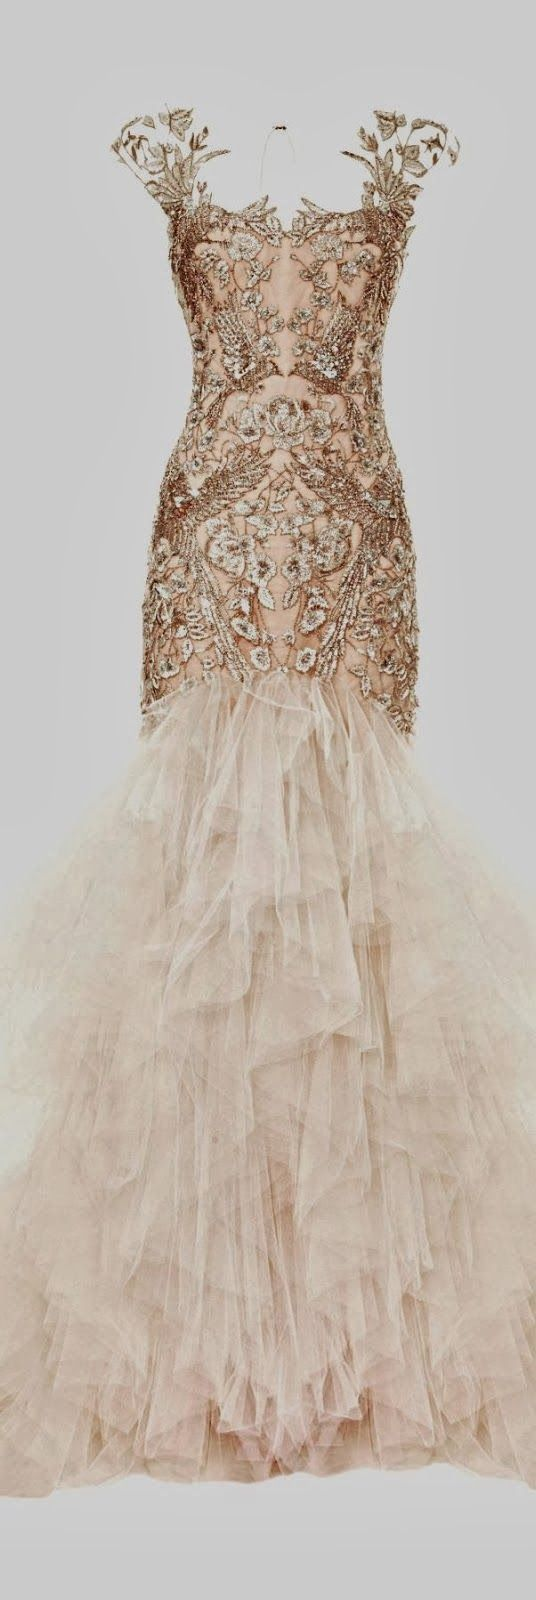 Wedding dress but doesn't have to be.